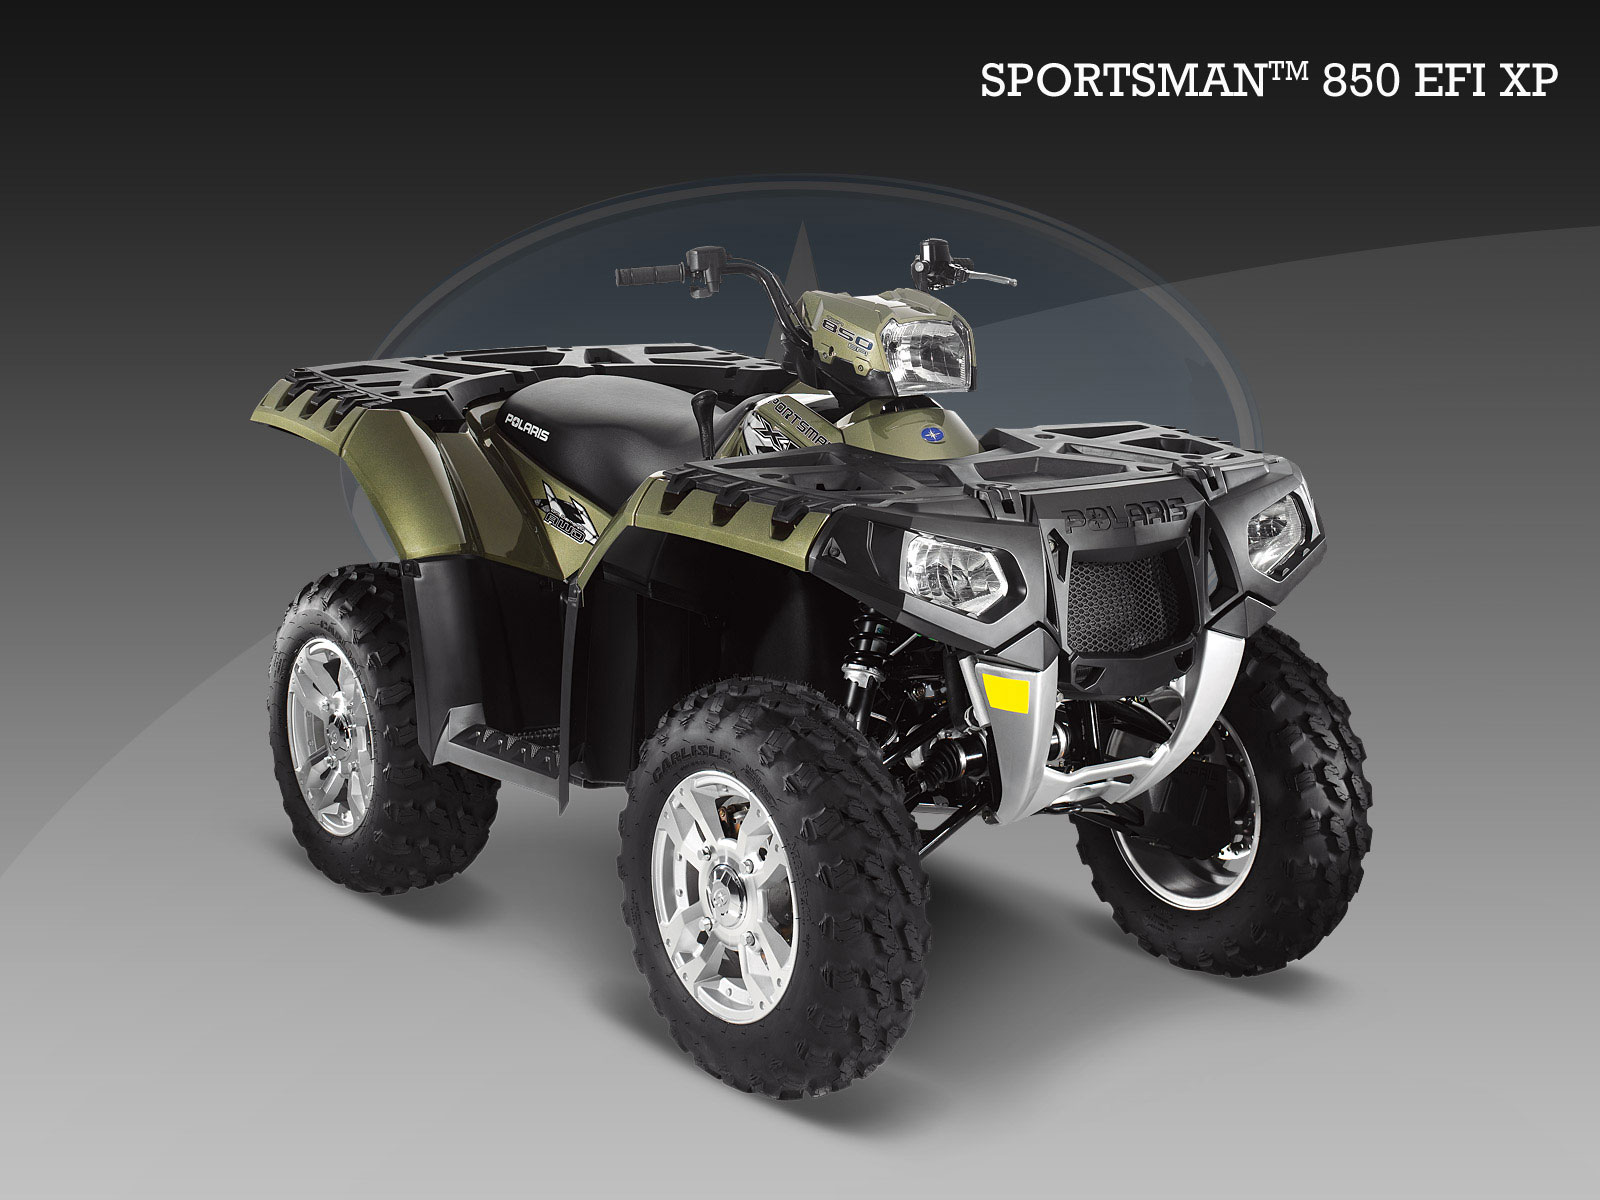 POLARIS Sportsman 850 EFI XP Photo Gallery #3/3